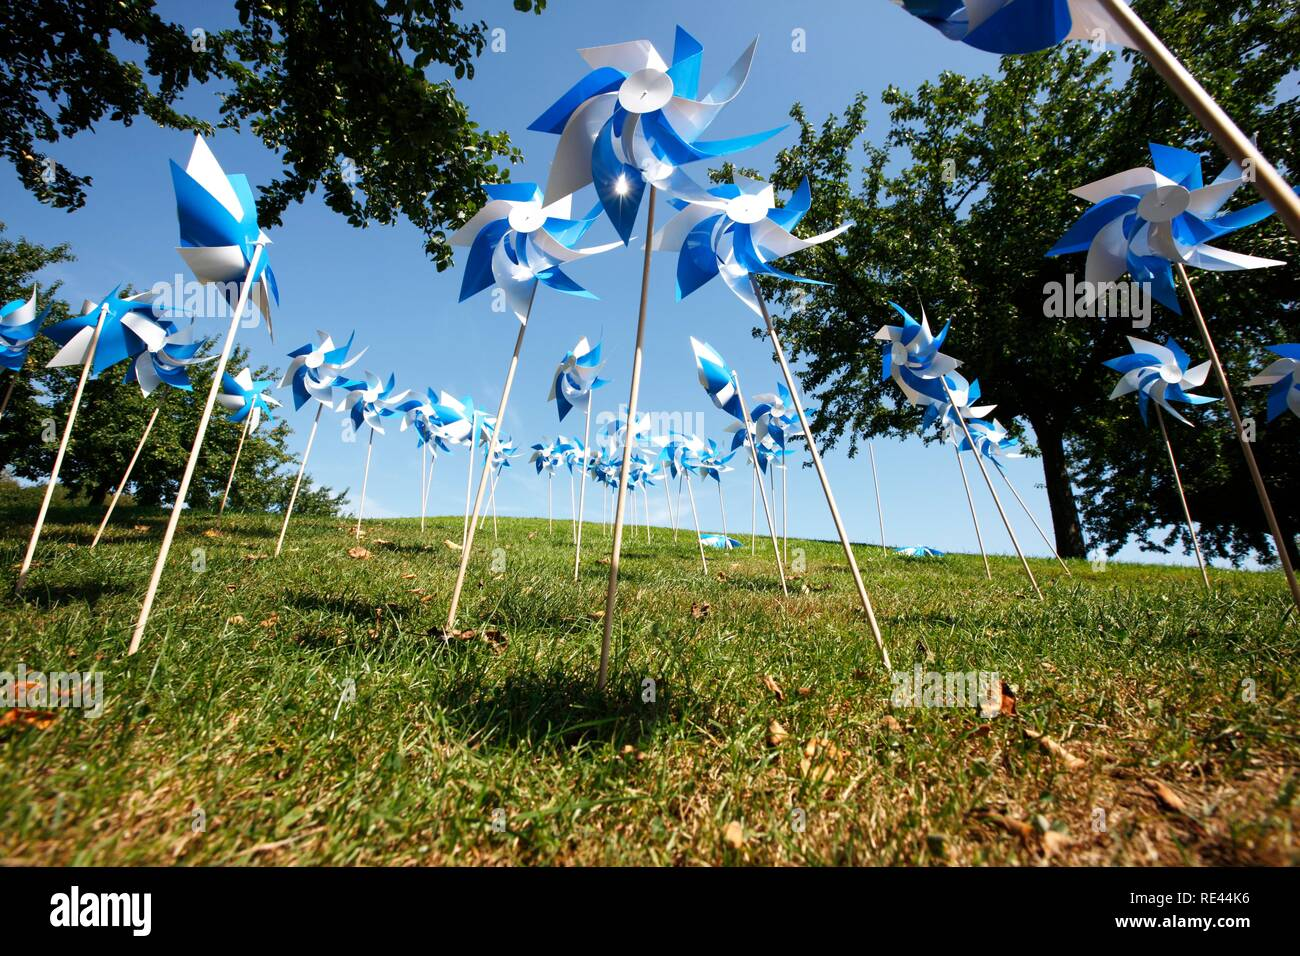 Blue and white plastic wind wheels as decoration on a lawn - Stock Image